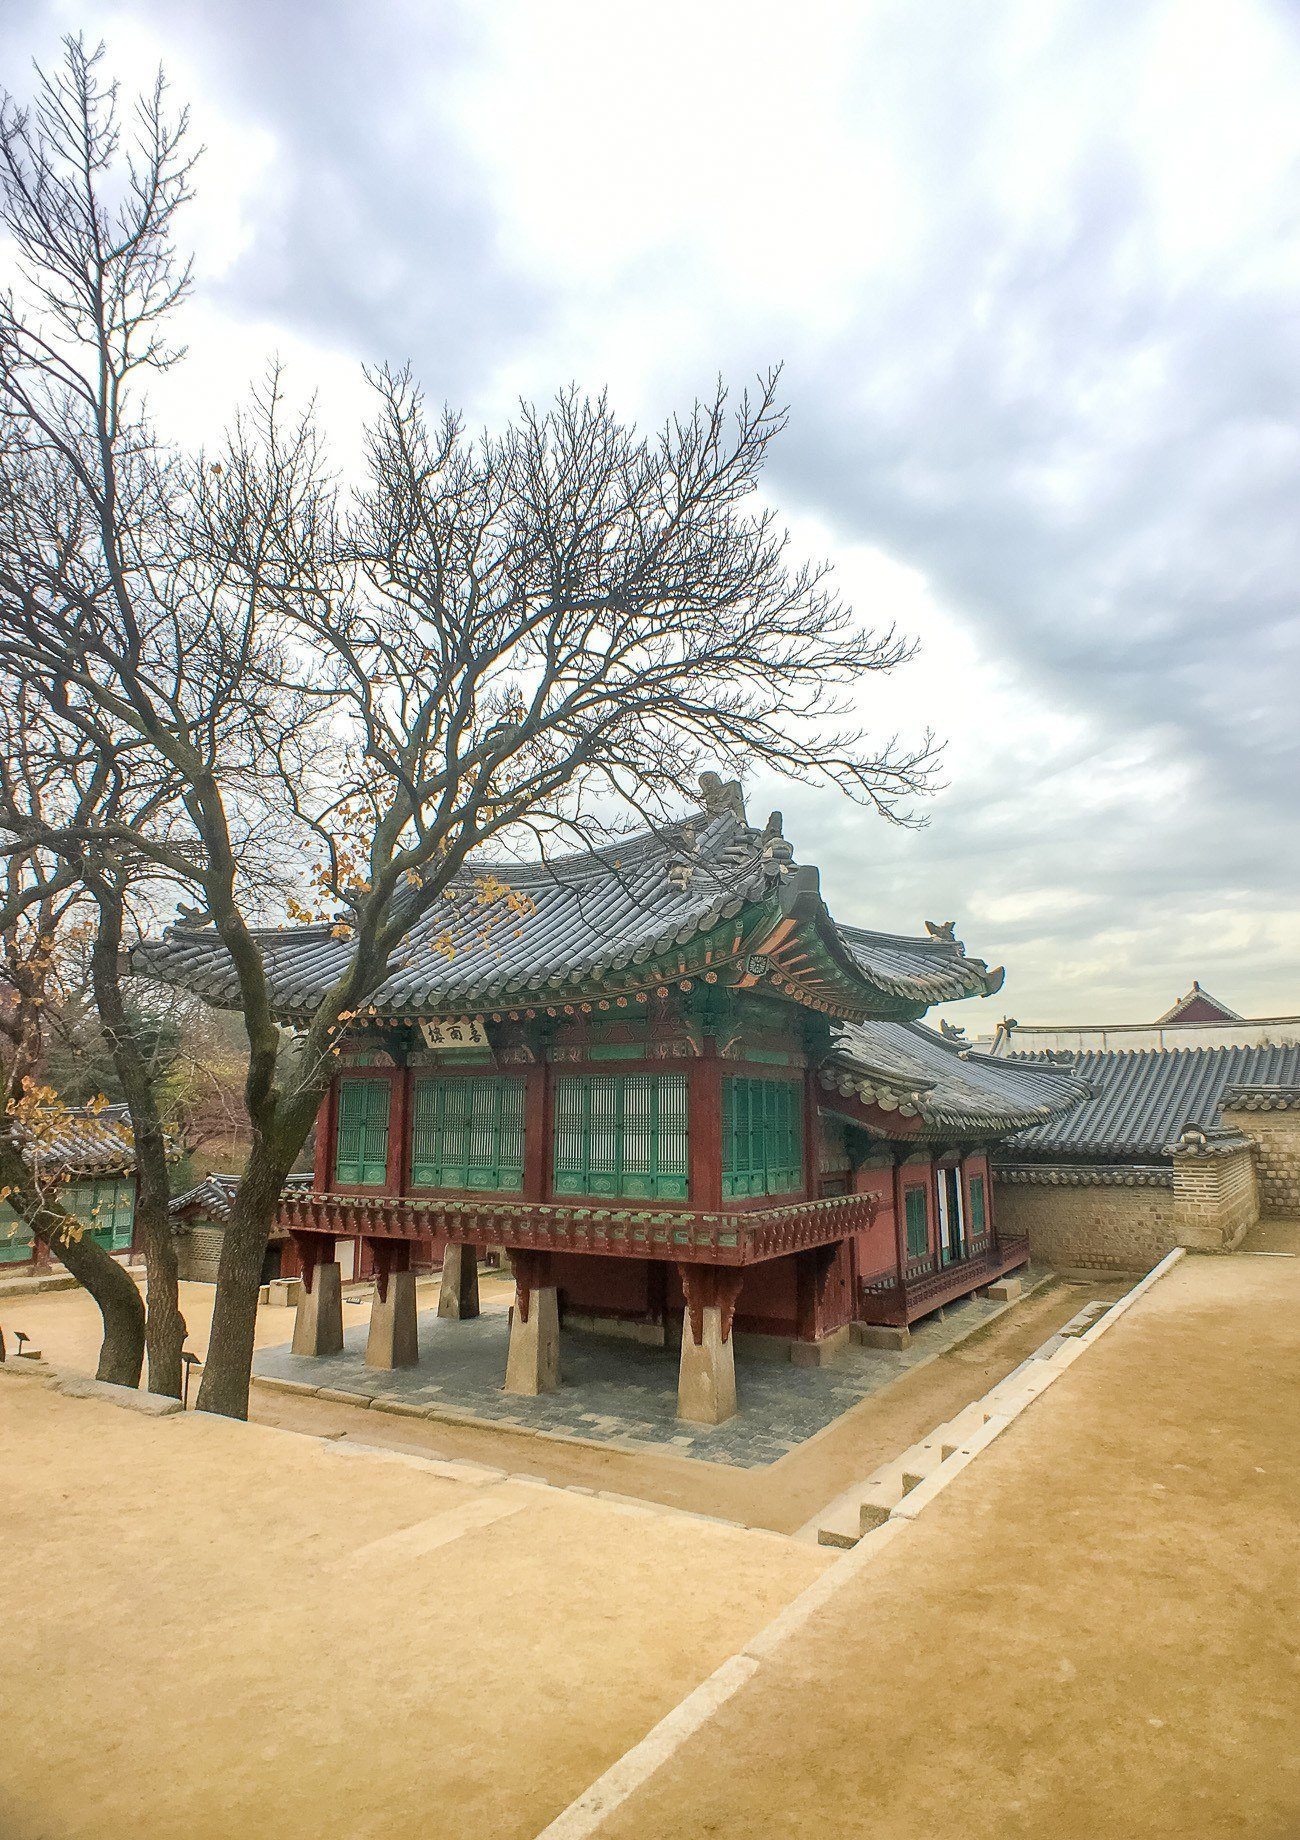 A view of the Changdeokgung Palace show with a Moment wide angle lens.